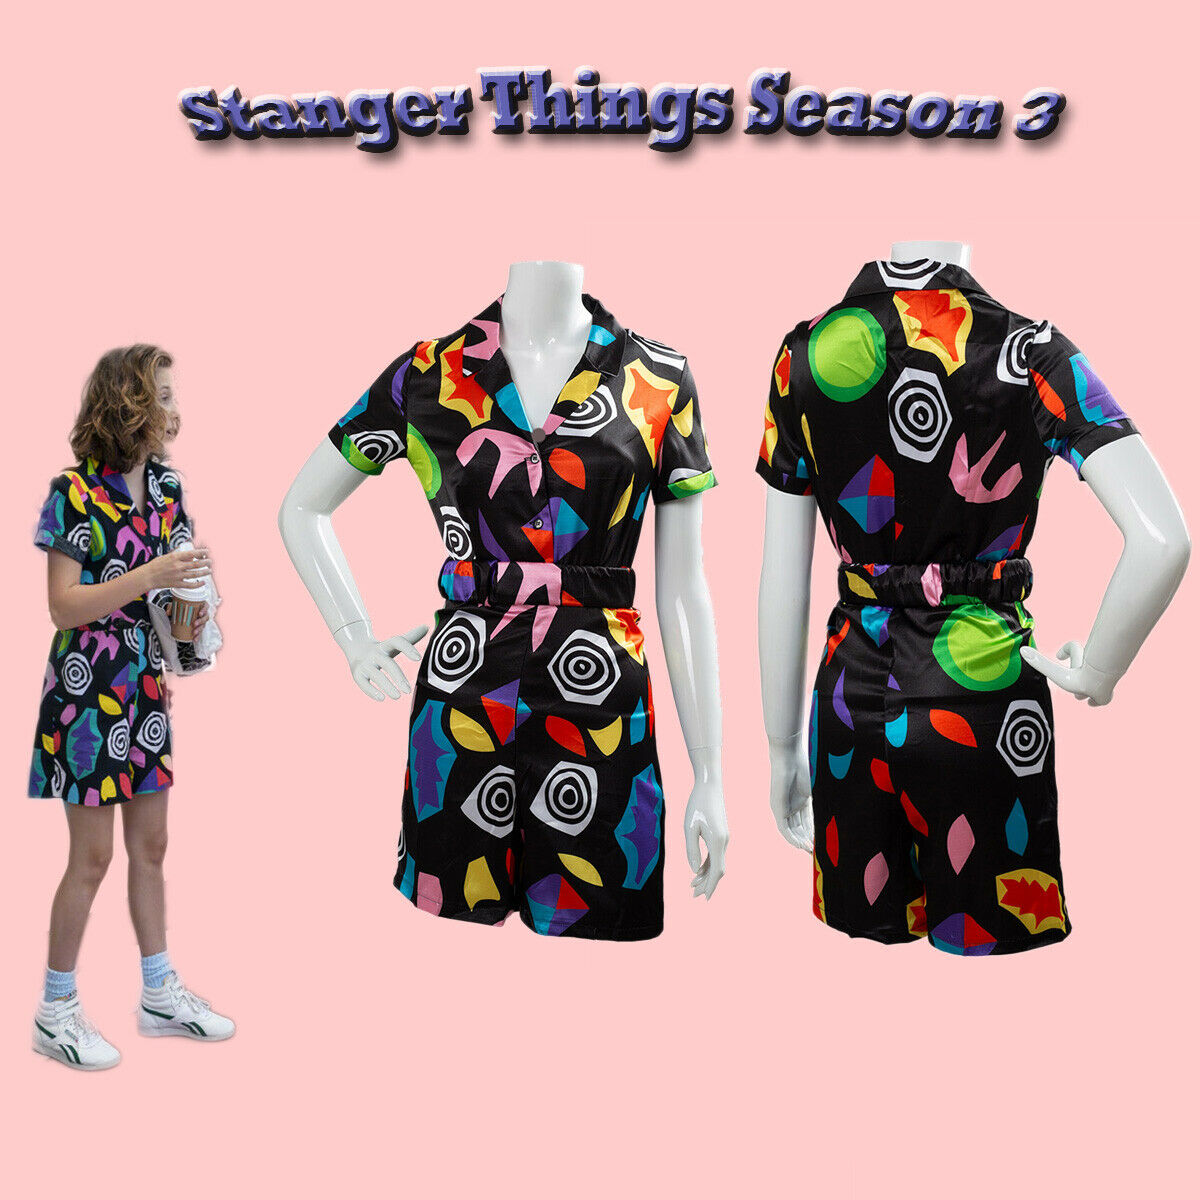 Stranger Things Season 3 Eleven Cosplay Costume Playsuit Dress Outfit Halloween Ebay